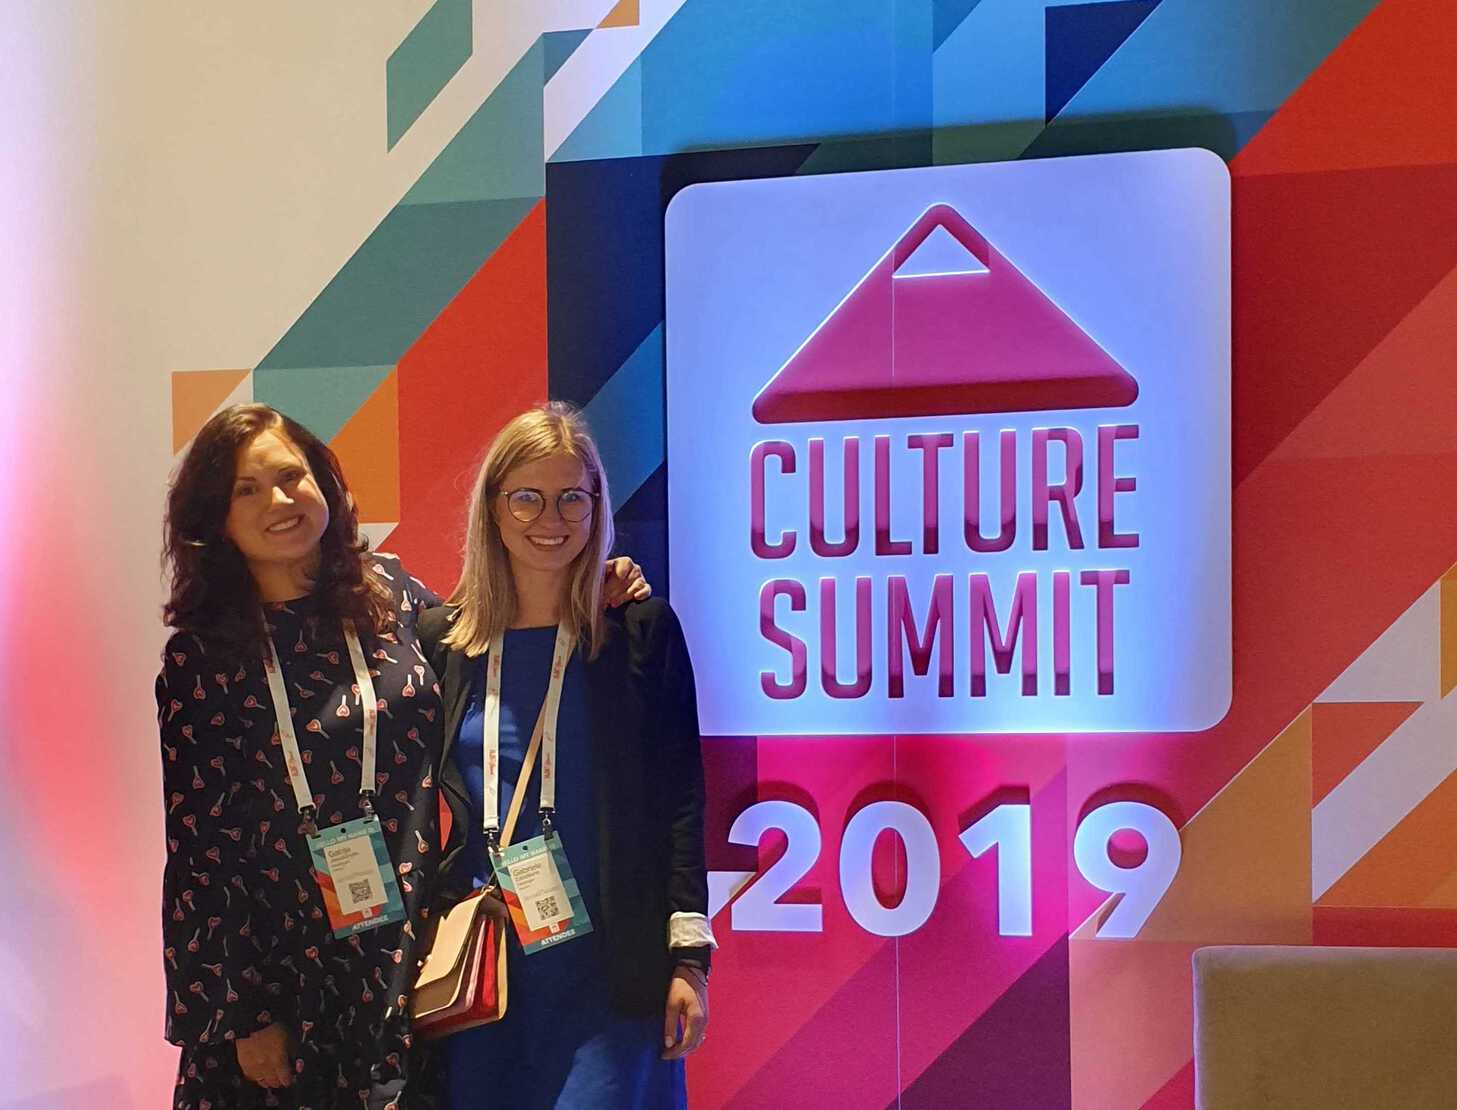 Representing Hostinger in the Culture Summit